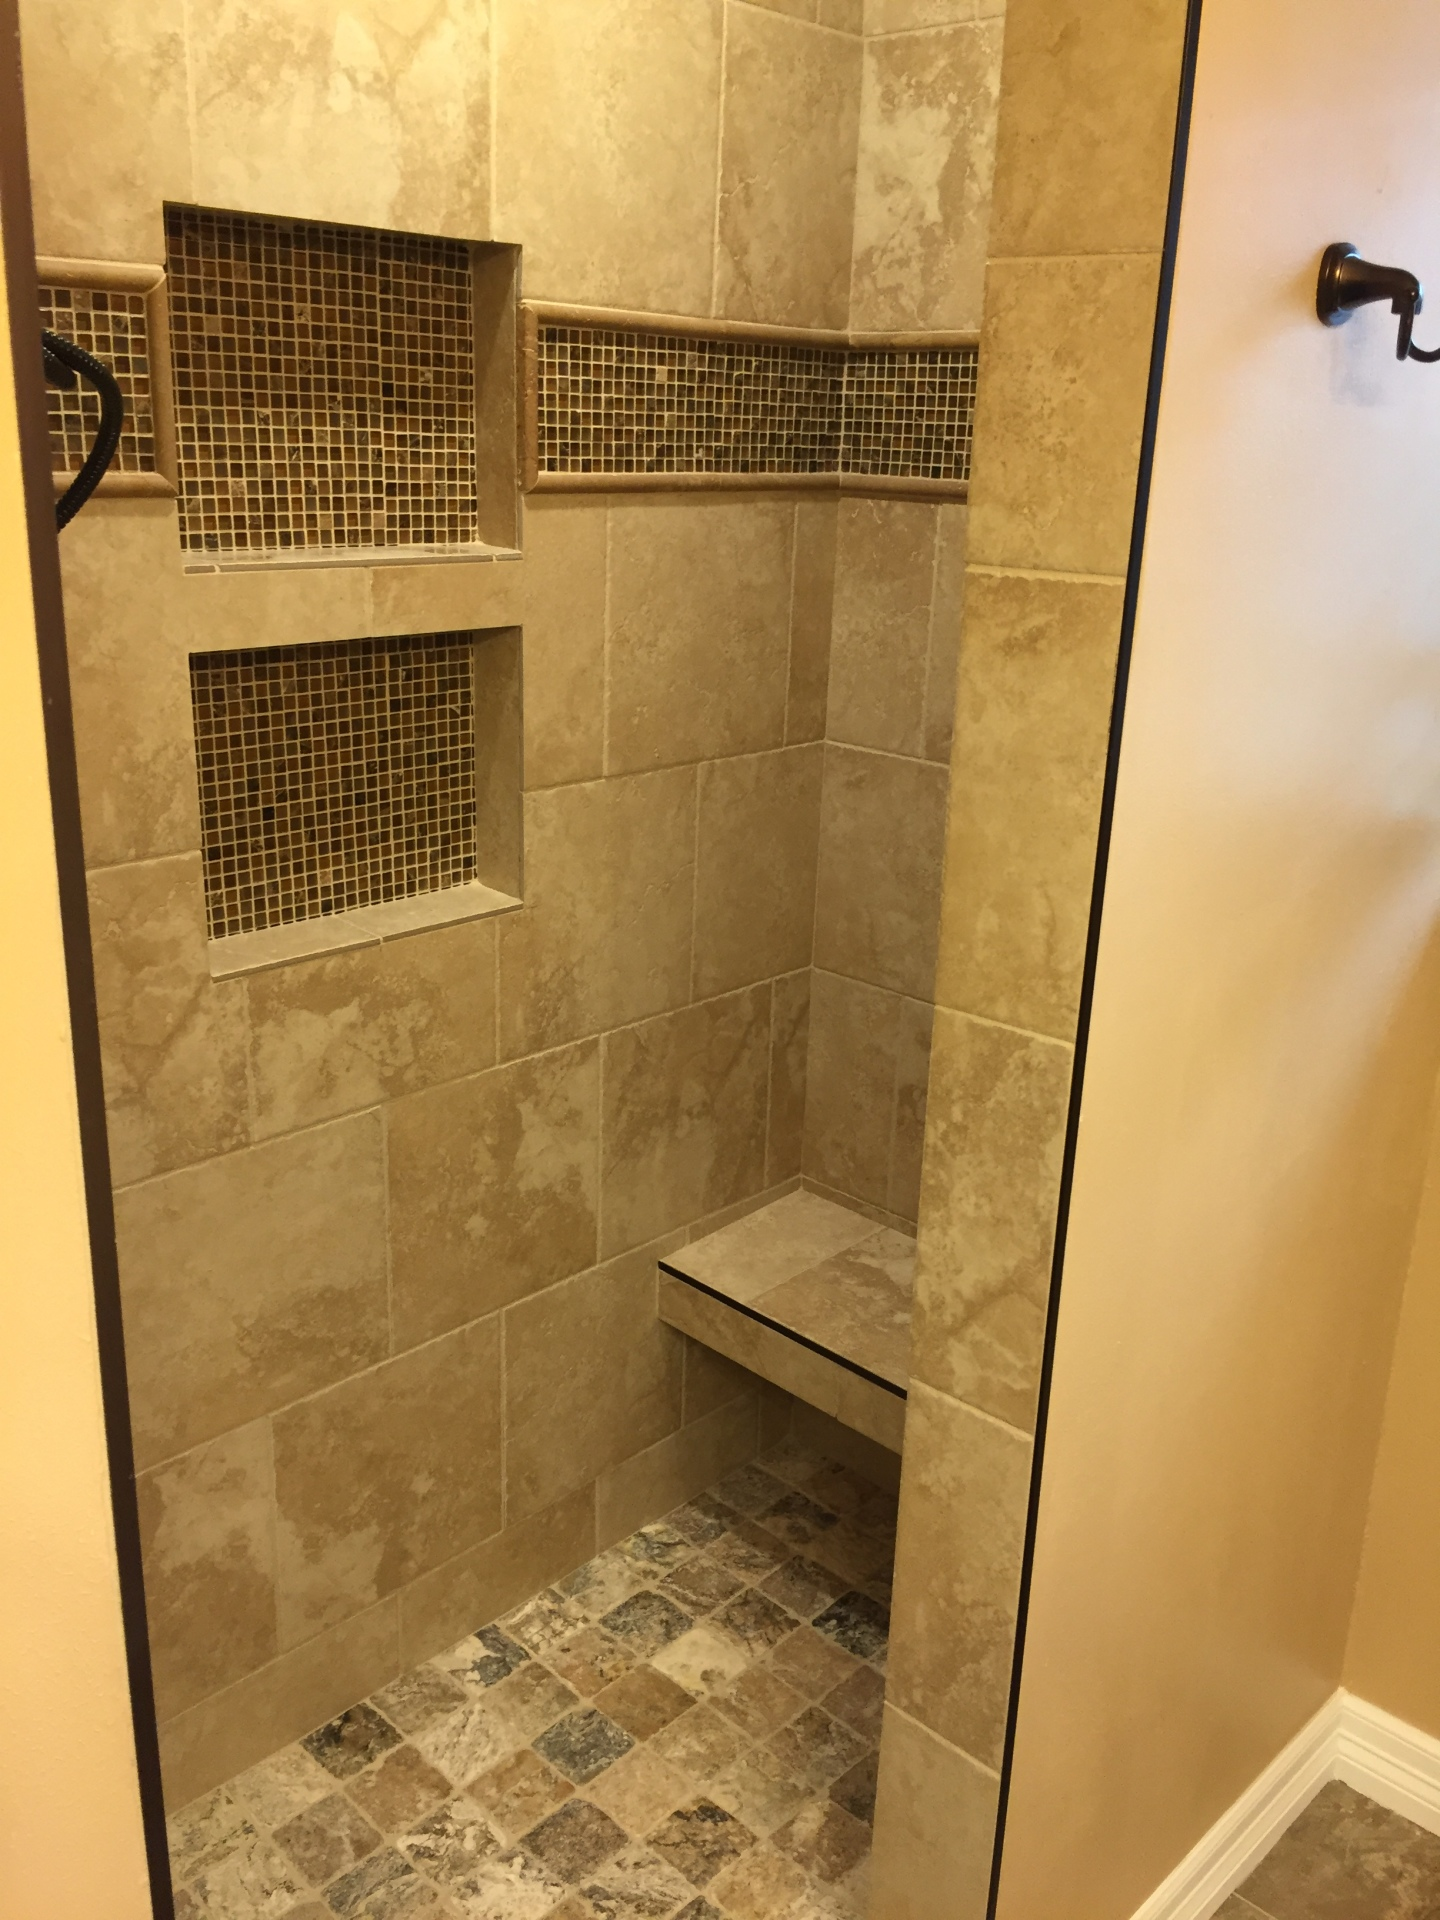 Tile shower stall